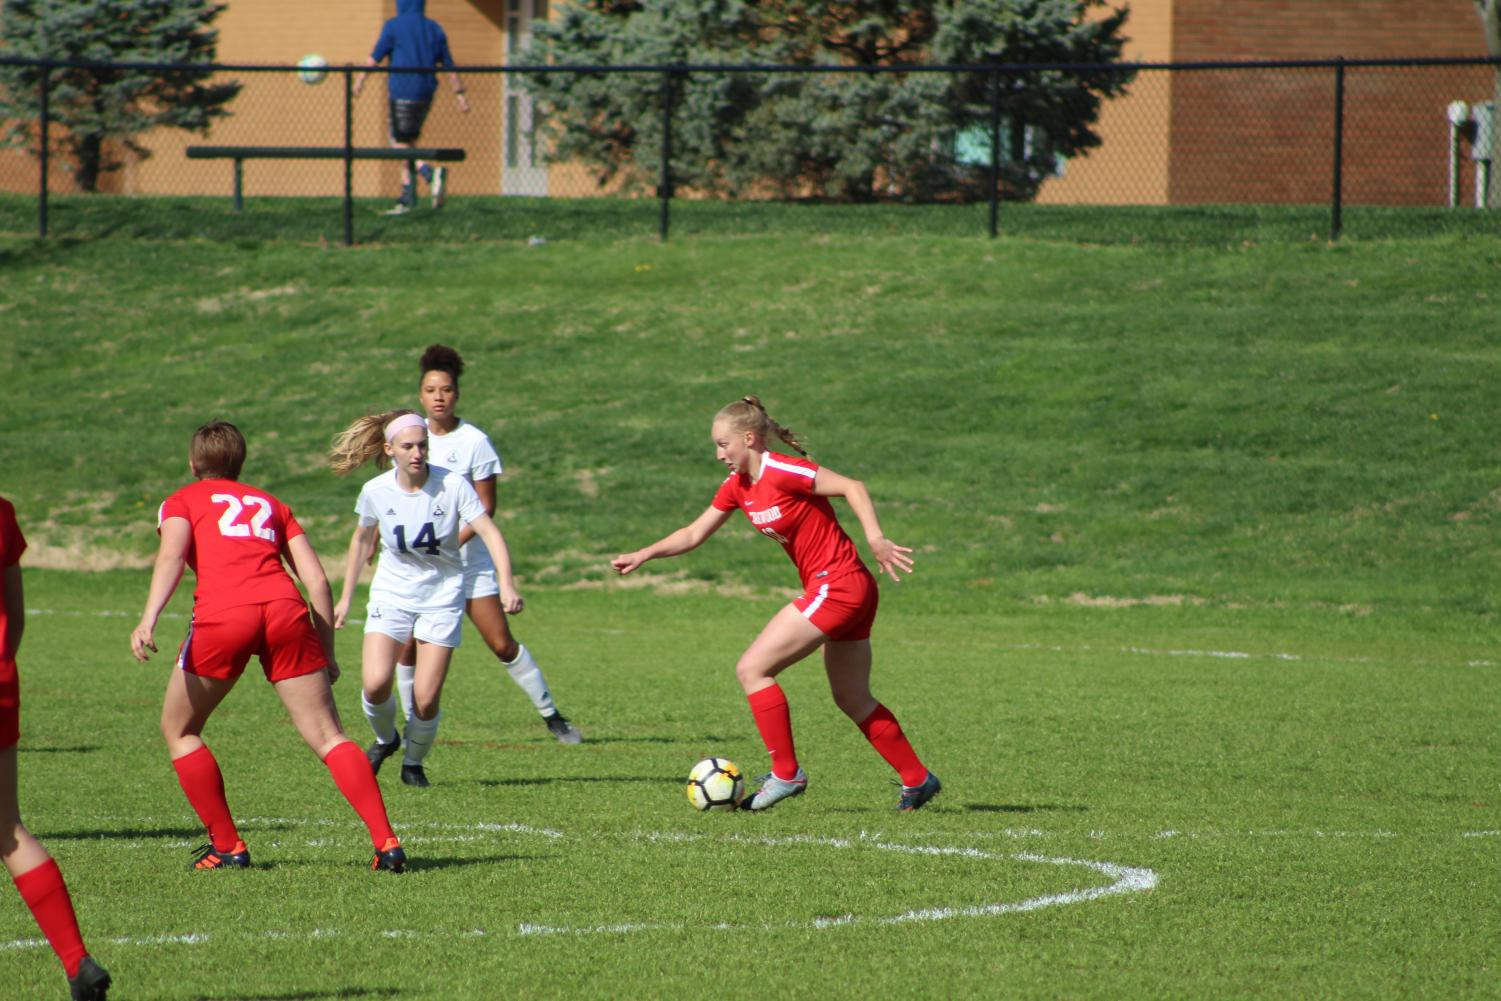 Katie+Hastings%2C+sophomore%2C+dribbles+the+ball+down+the+field.+